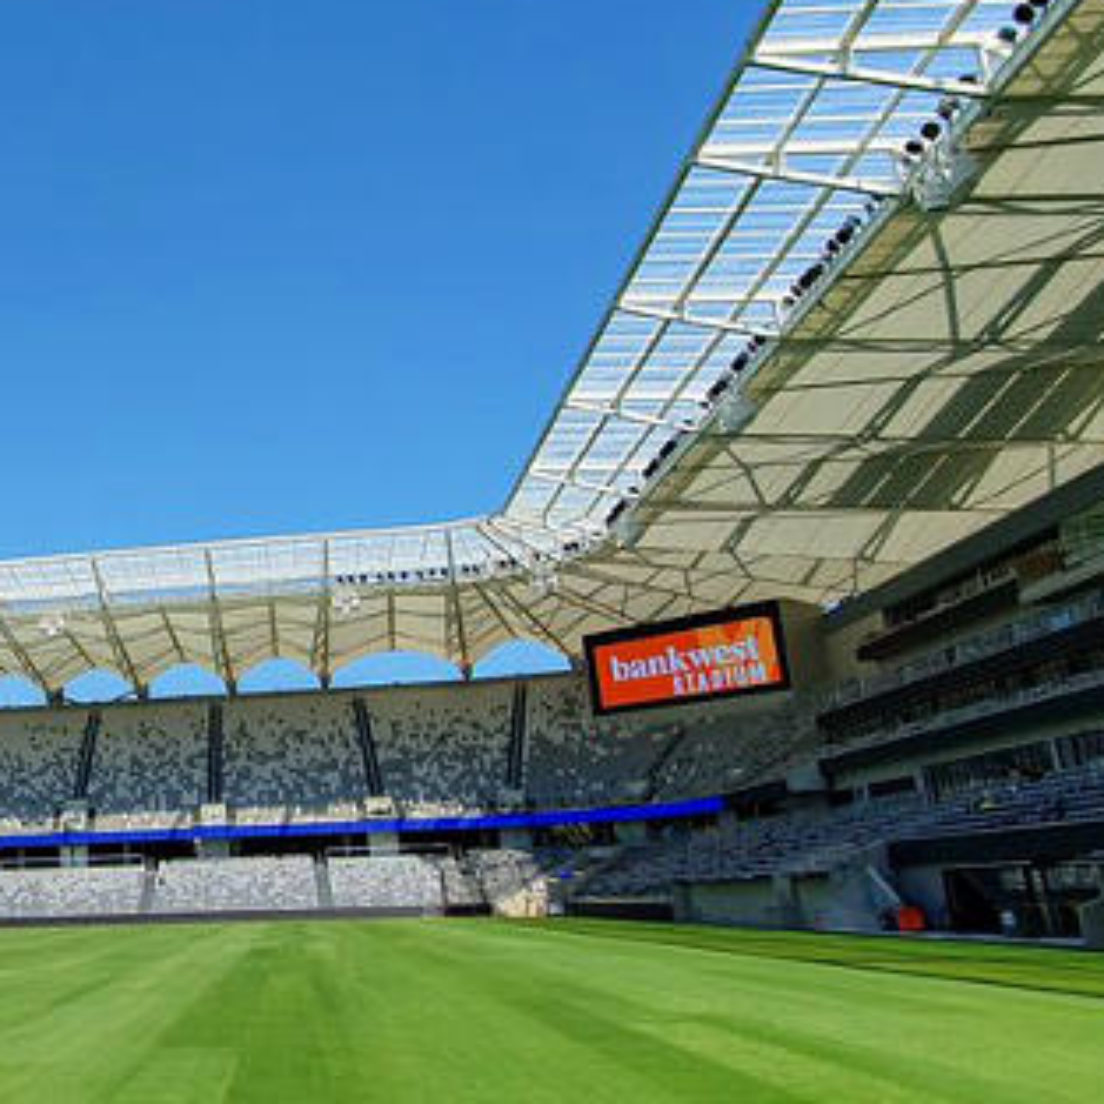 Warriors New Stadium Opening: The Thing They Haven't Told You About Bankwest Stadium